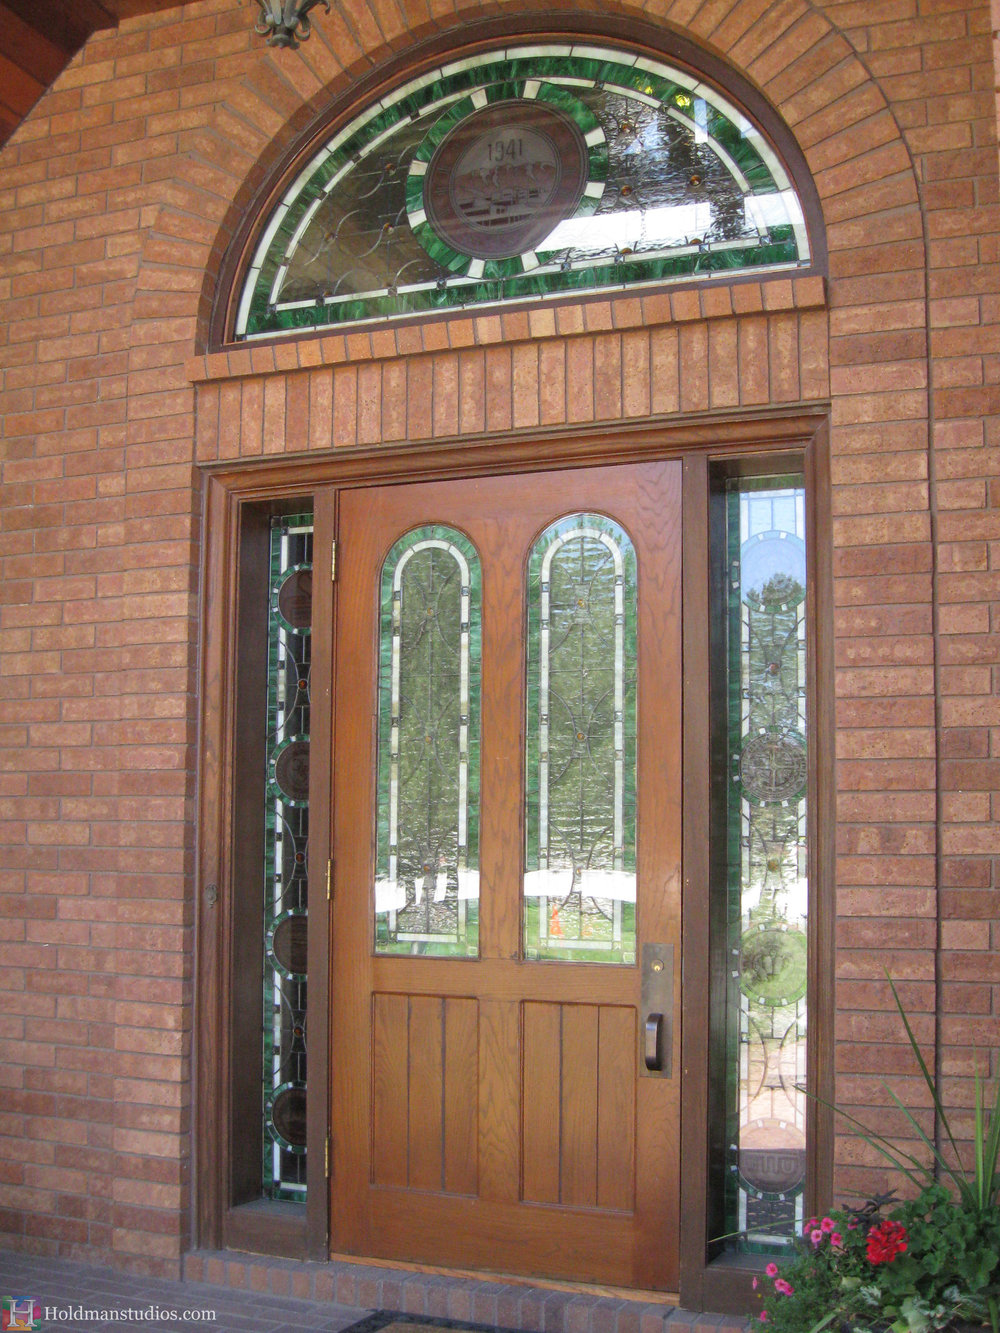 Holdman-studios-stained-glass-front-door-sidelight-transom-windows-utah-valley-university-alumni-house-outside-view.jpg